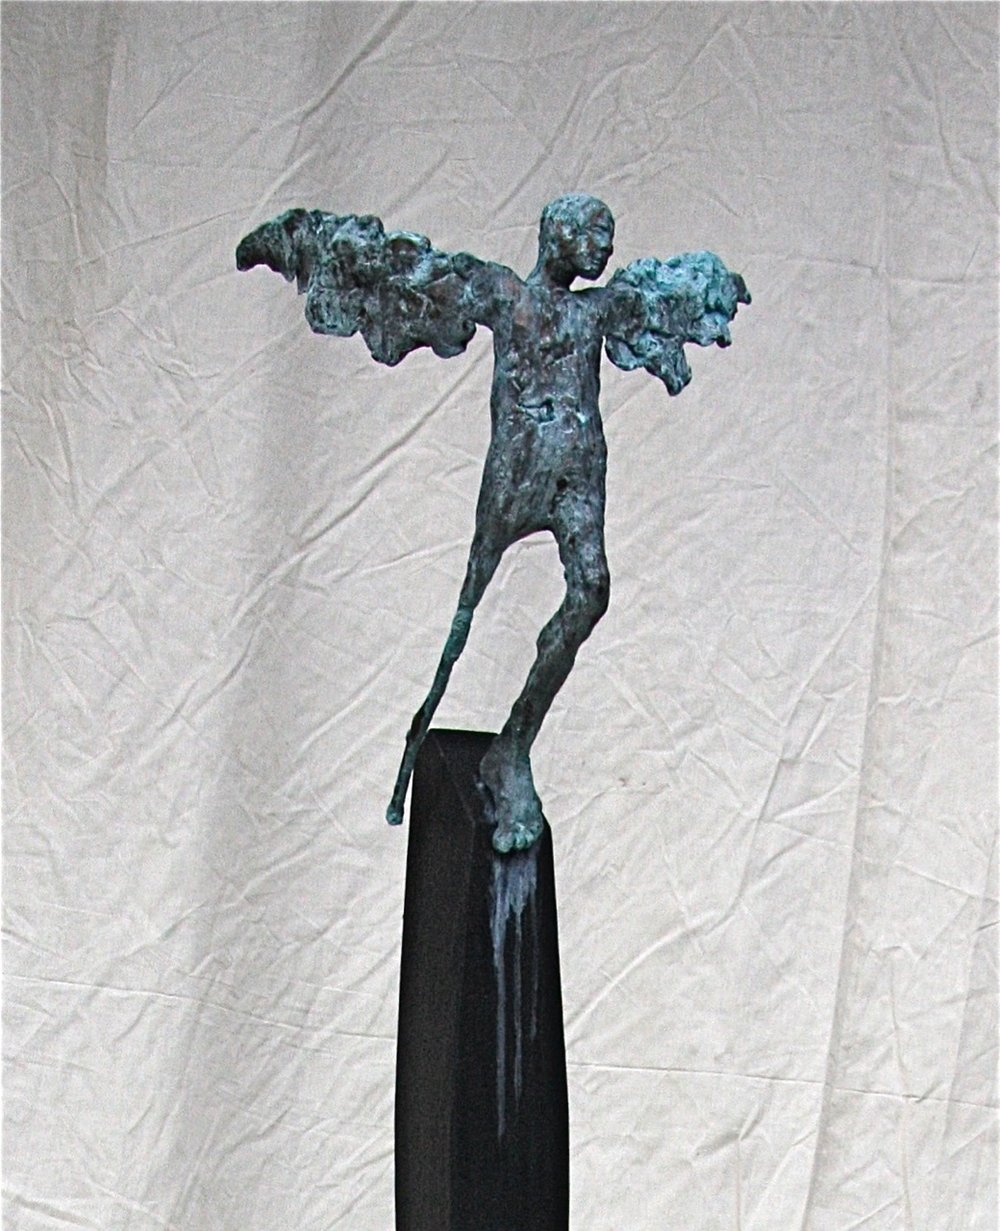 Turning of the season   2011  Bronze and wood  30 x 11 x 14""